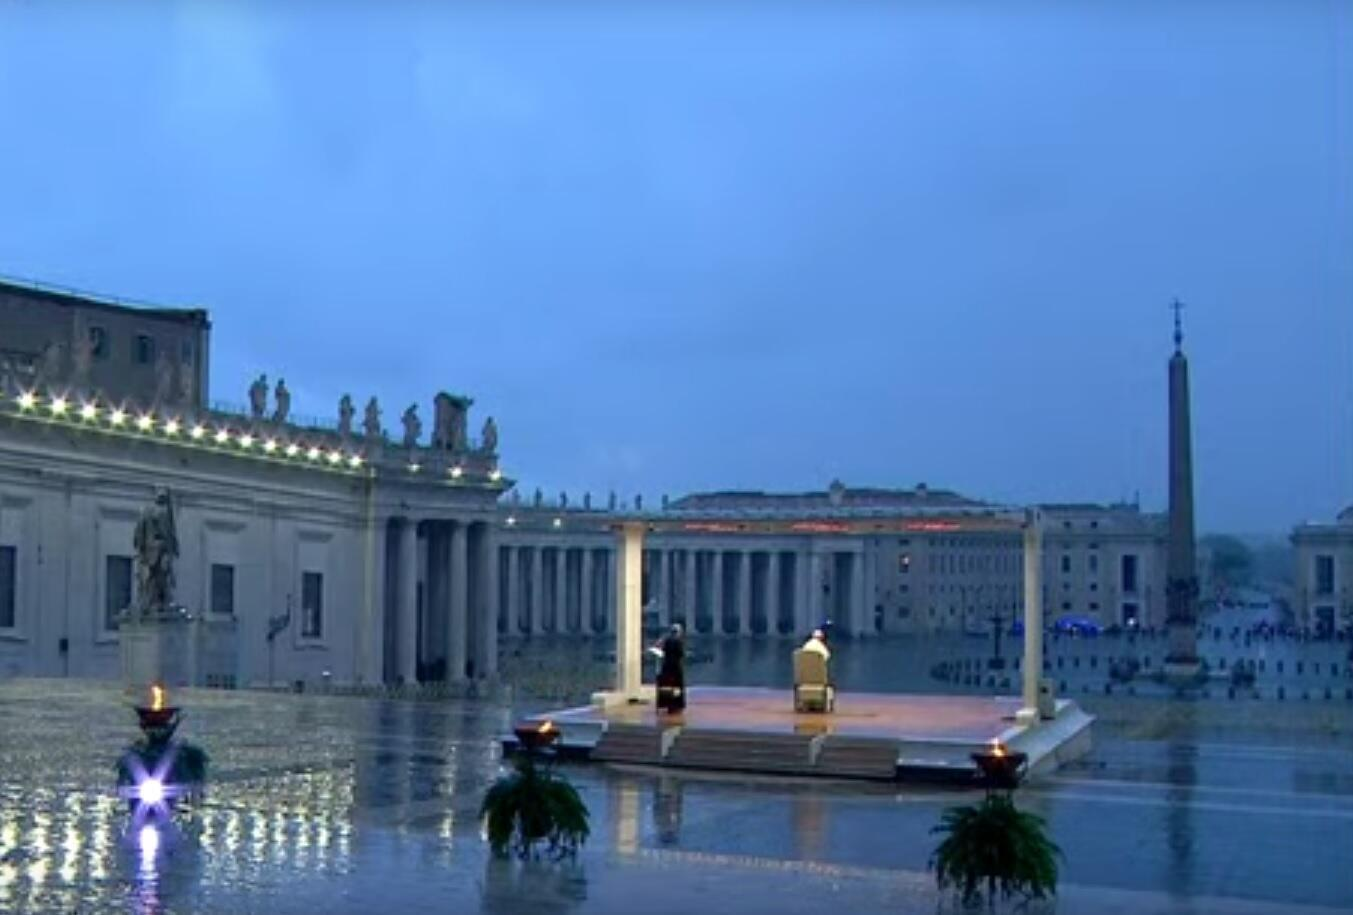 St Peter's Square was empty during Pope Francis' address as people remain on lockdown due to coronavirus.